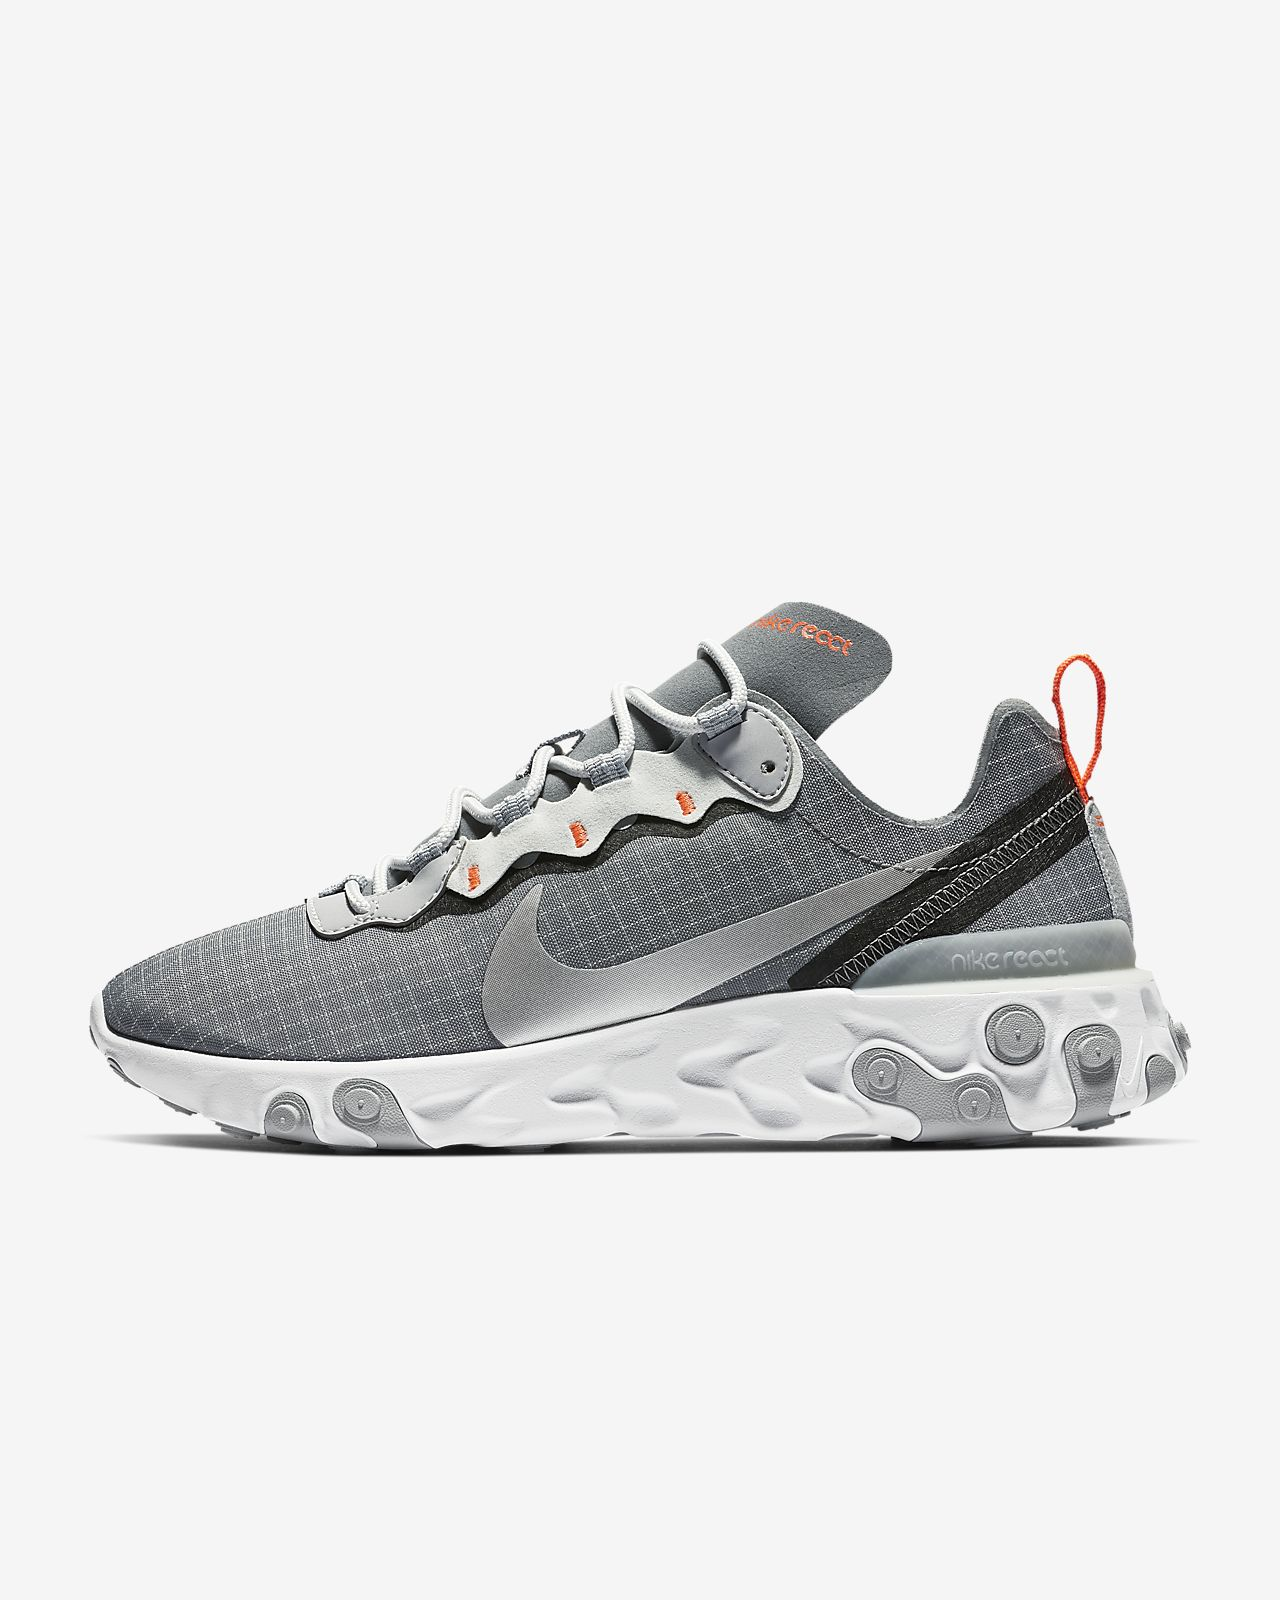 Chaussure 55 HommeCa Nike React Element Pour H2WY9IDbeE